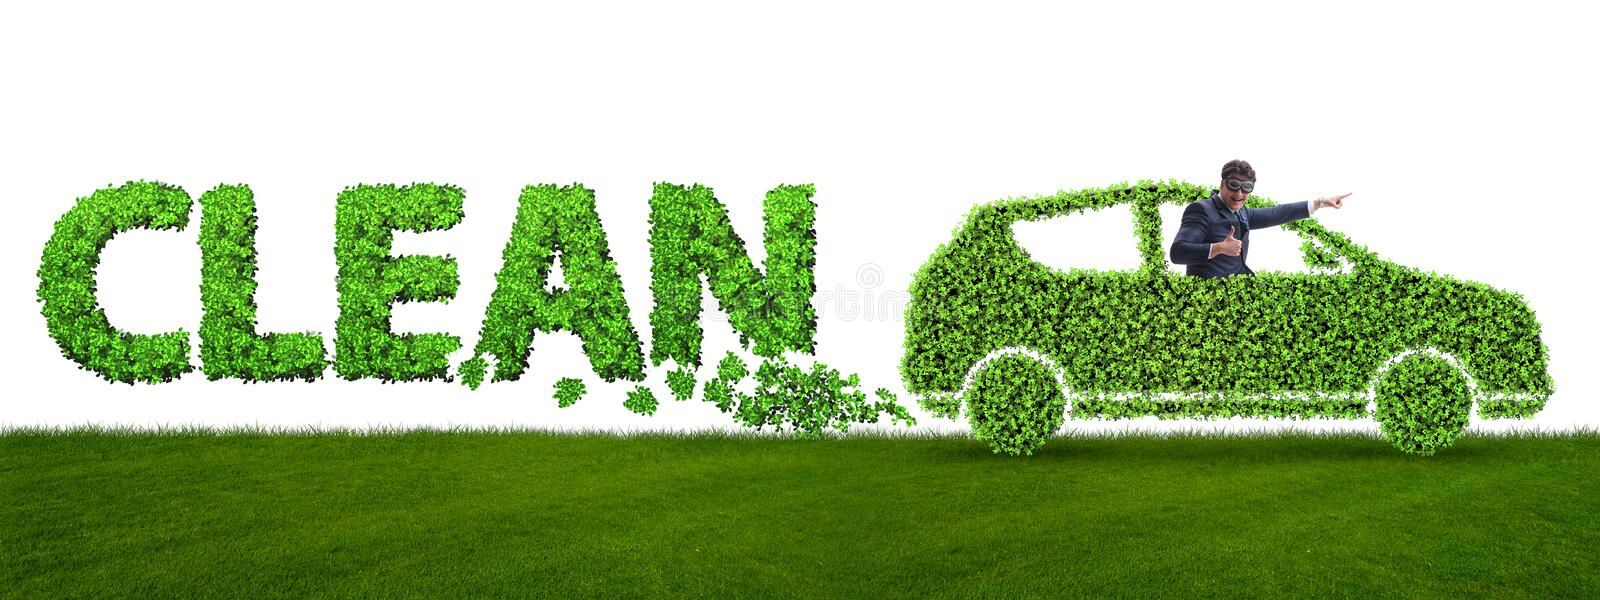 The concept of clean fuel and eco friendly cars stock images